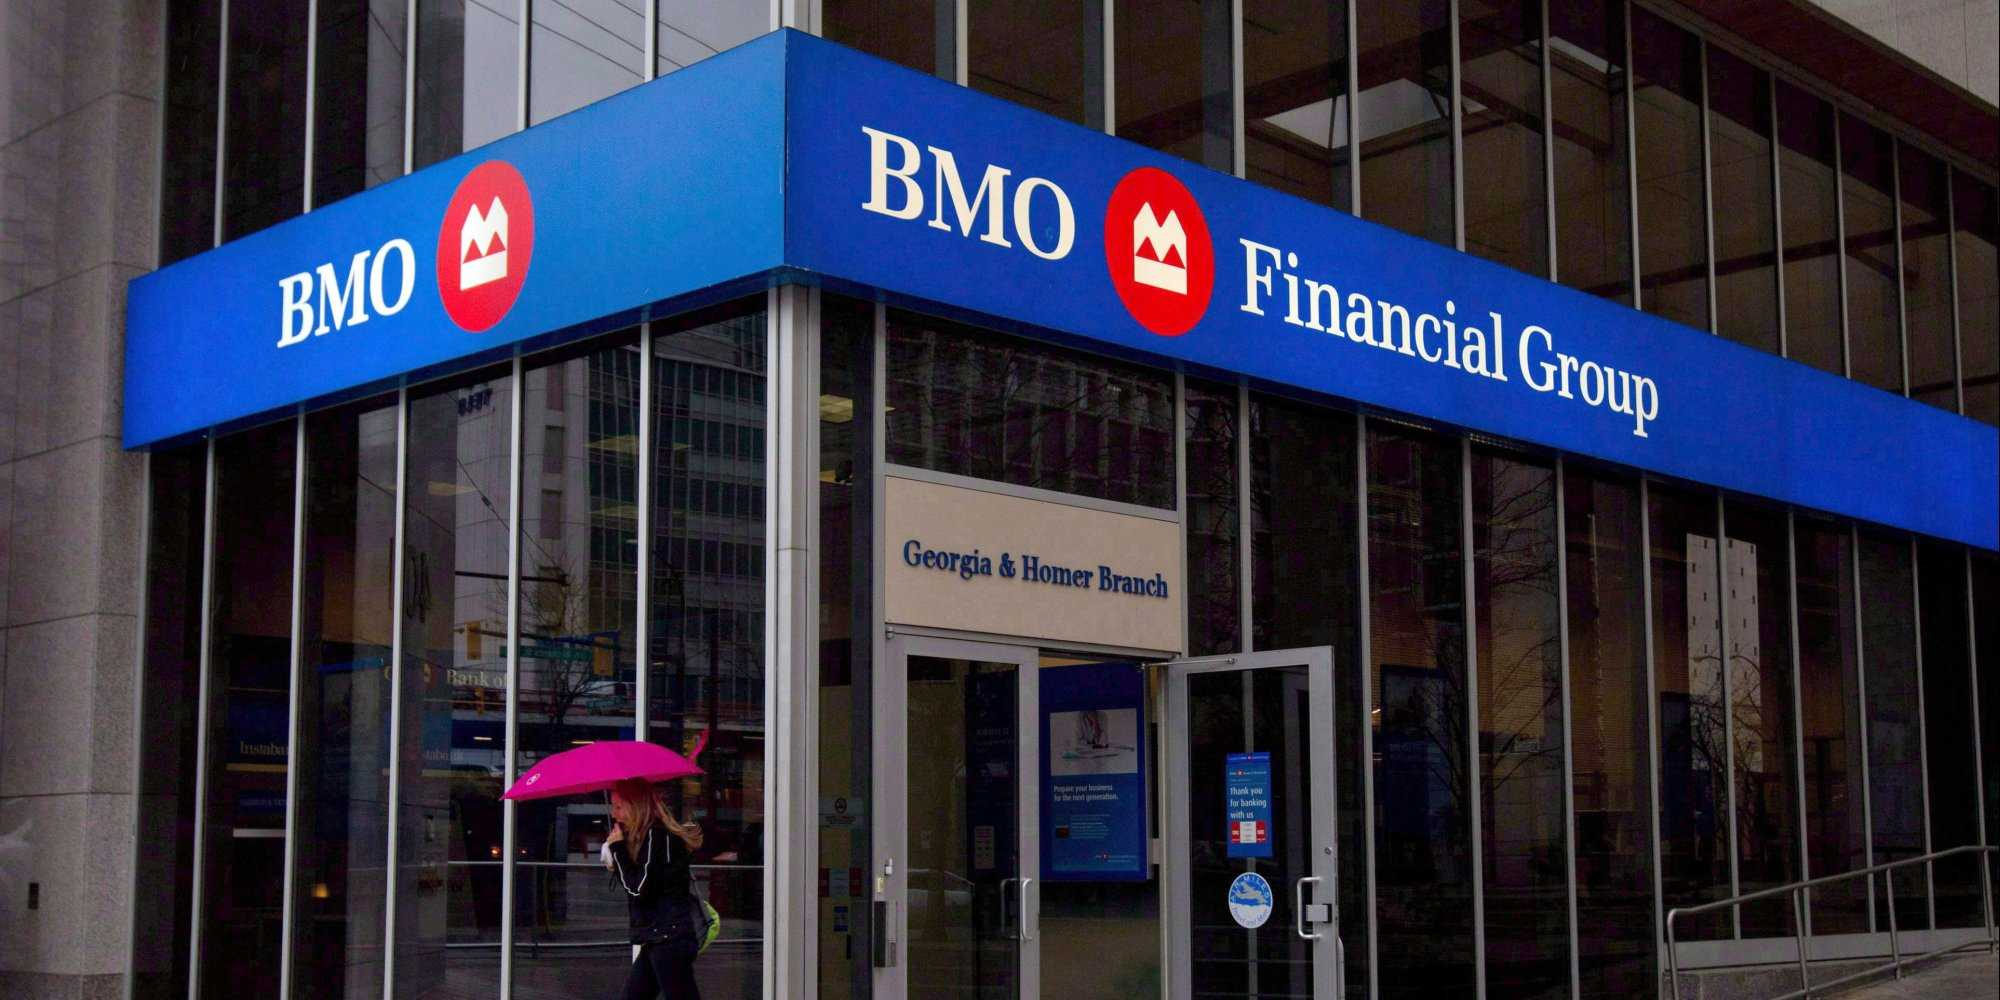 bmo near me, bmo bank hours